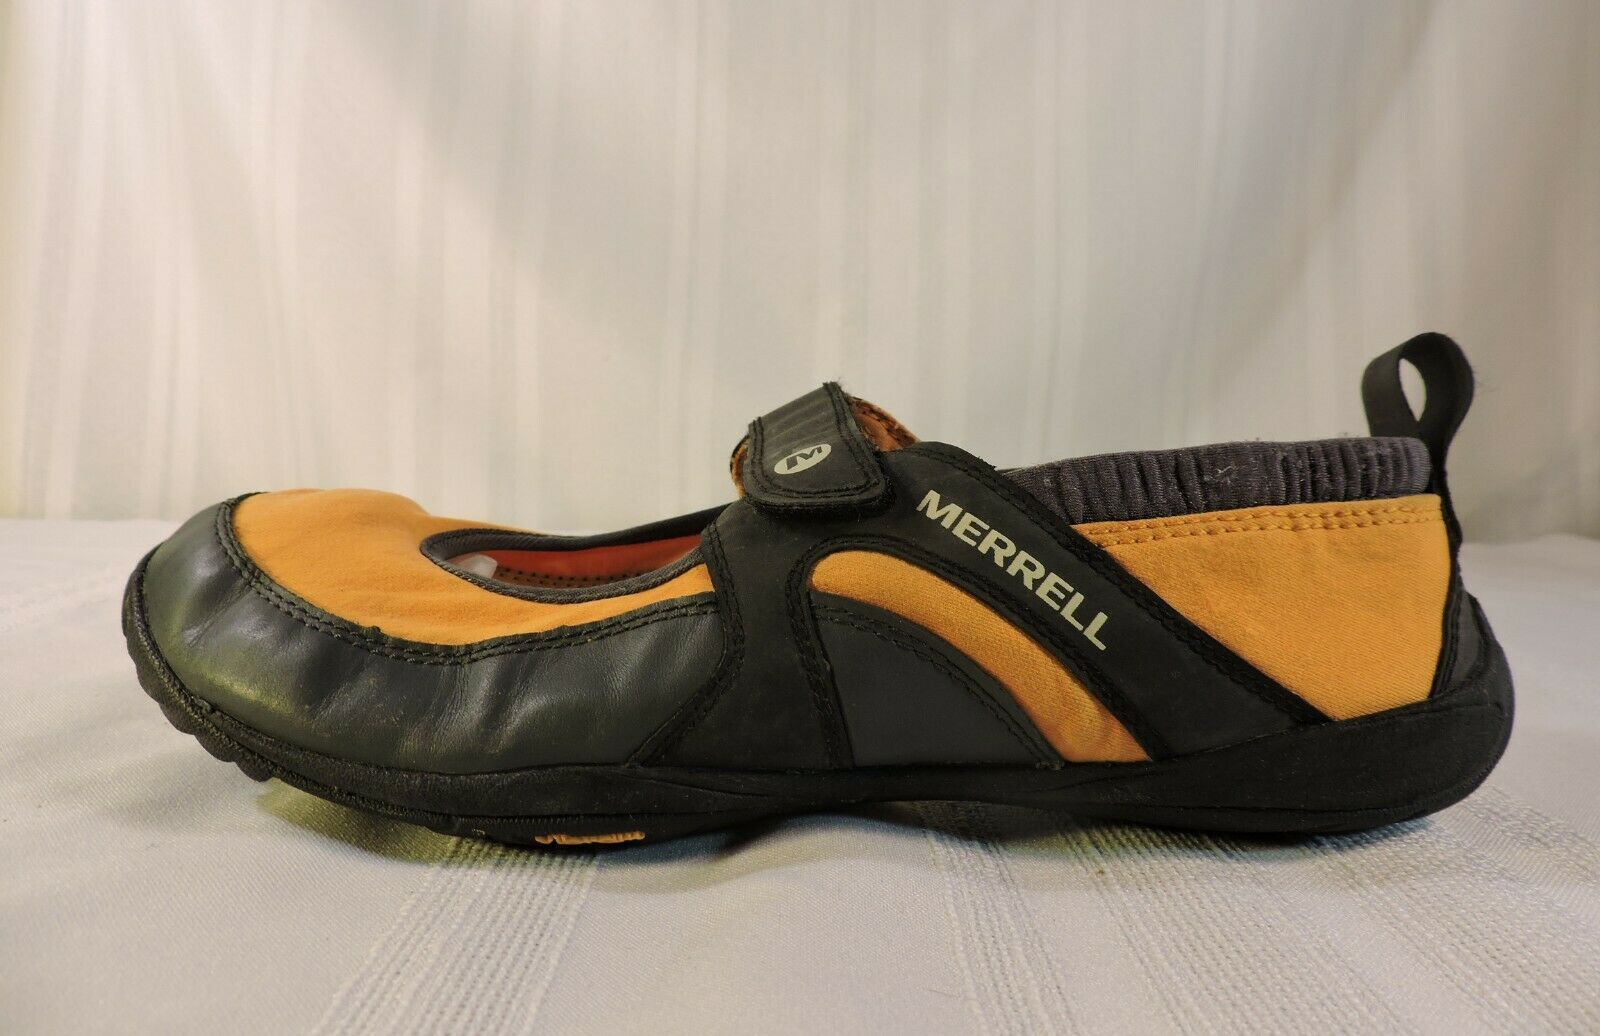 MERRELL Barefoot Pure Glove Training Shoes Women's US Size 9 / EU 40 Orange image 5